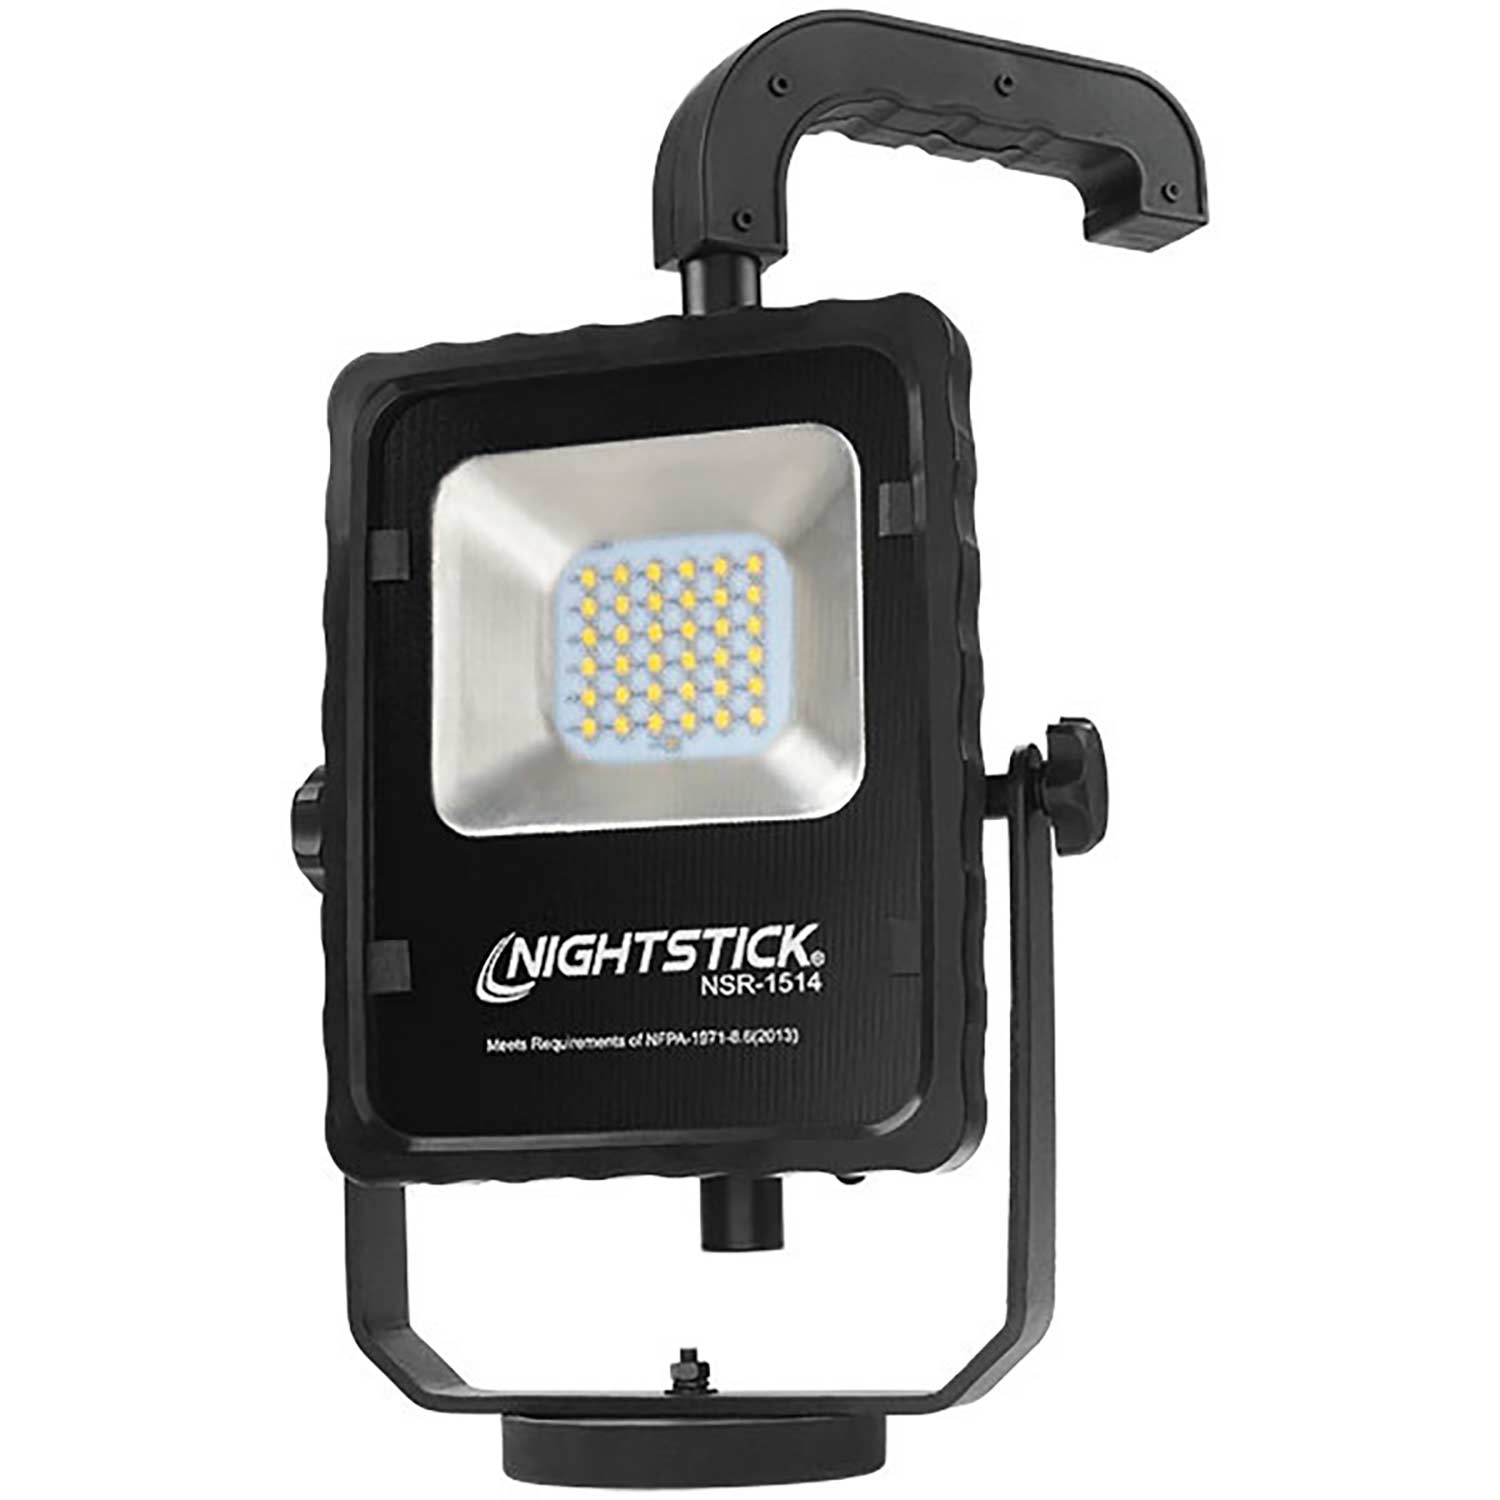 Nightstick NSR-1514 Rechargeable LED Area Light